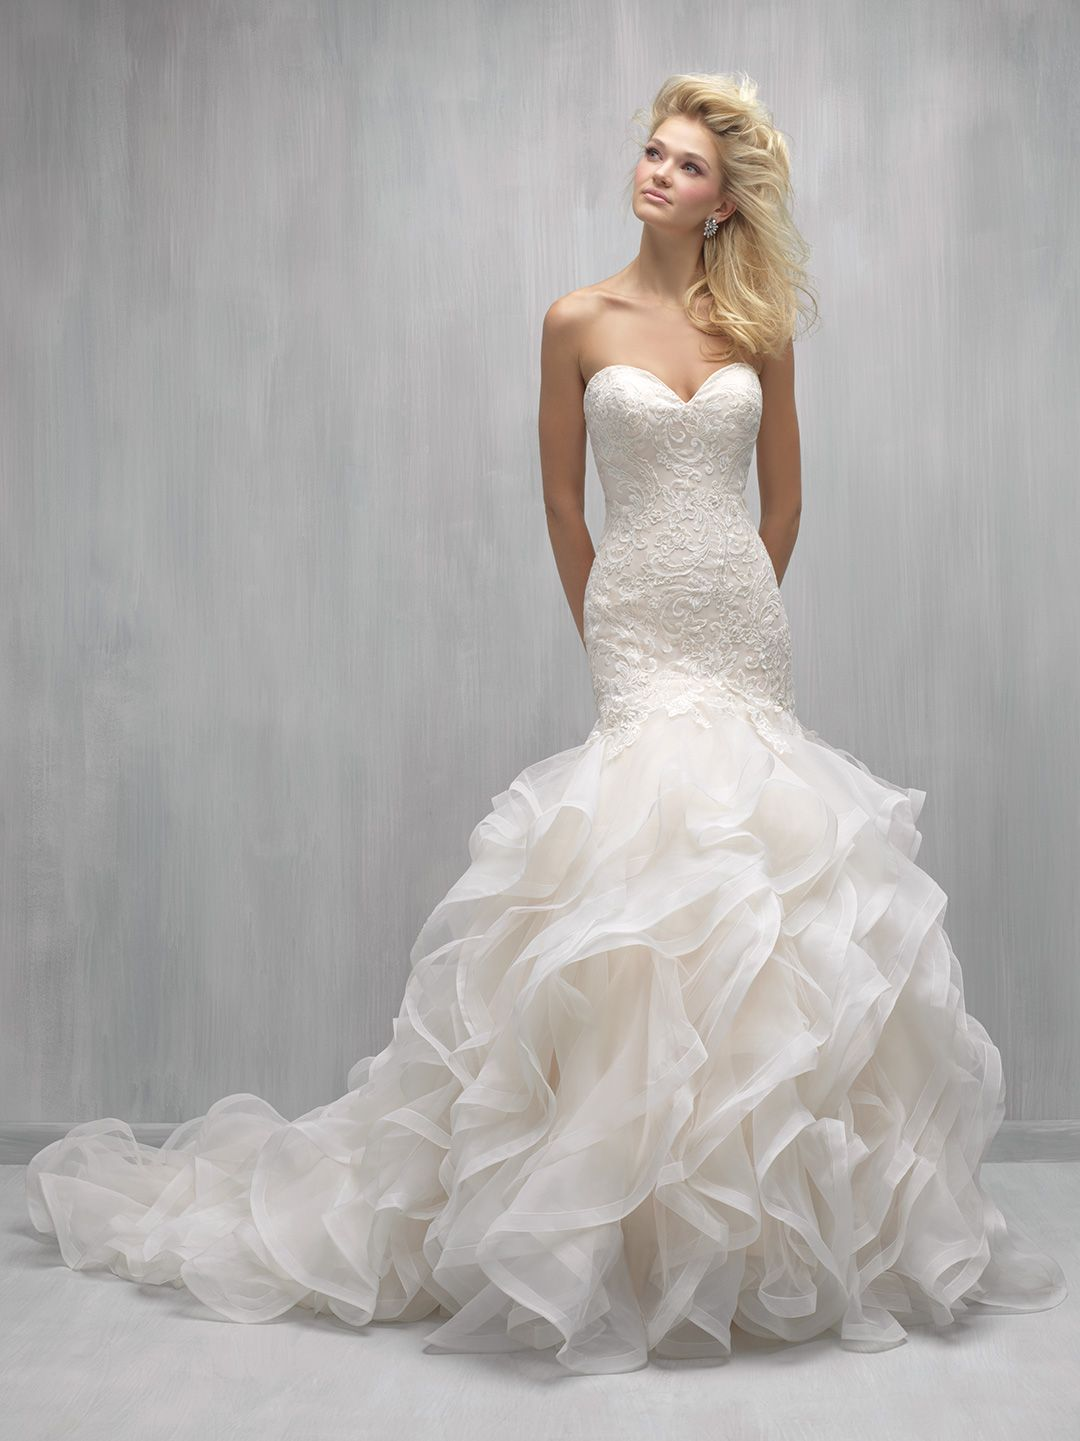 Allure Madison James MJ265 | Found at New York Bride & Groom in ...